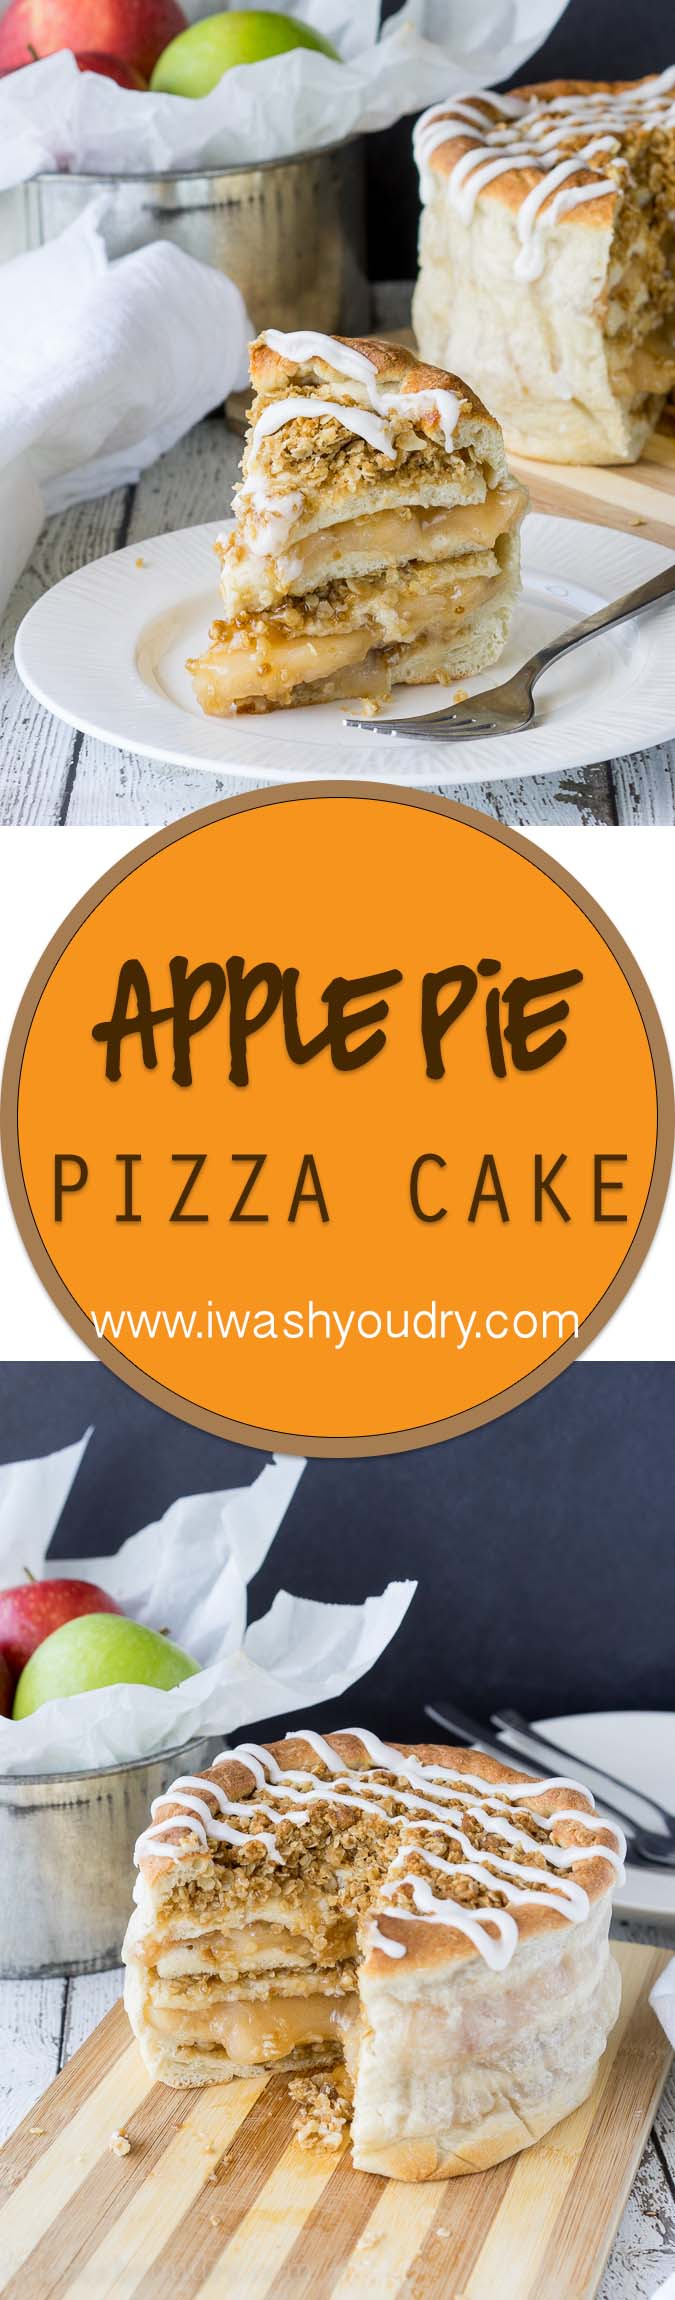 The Apple Pie Pizza Cake is a sweet dessert that's layered with apple pie filling and brown sugar oat crumble, then wrapped up with pizza dough and served with a sweet icing on top! Sooooo good!